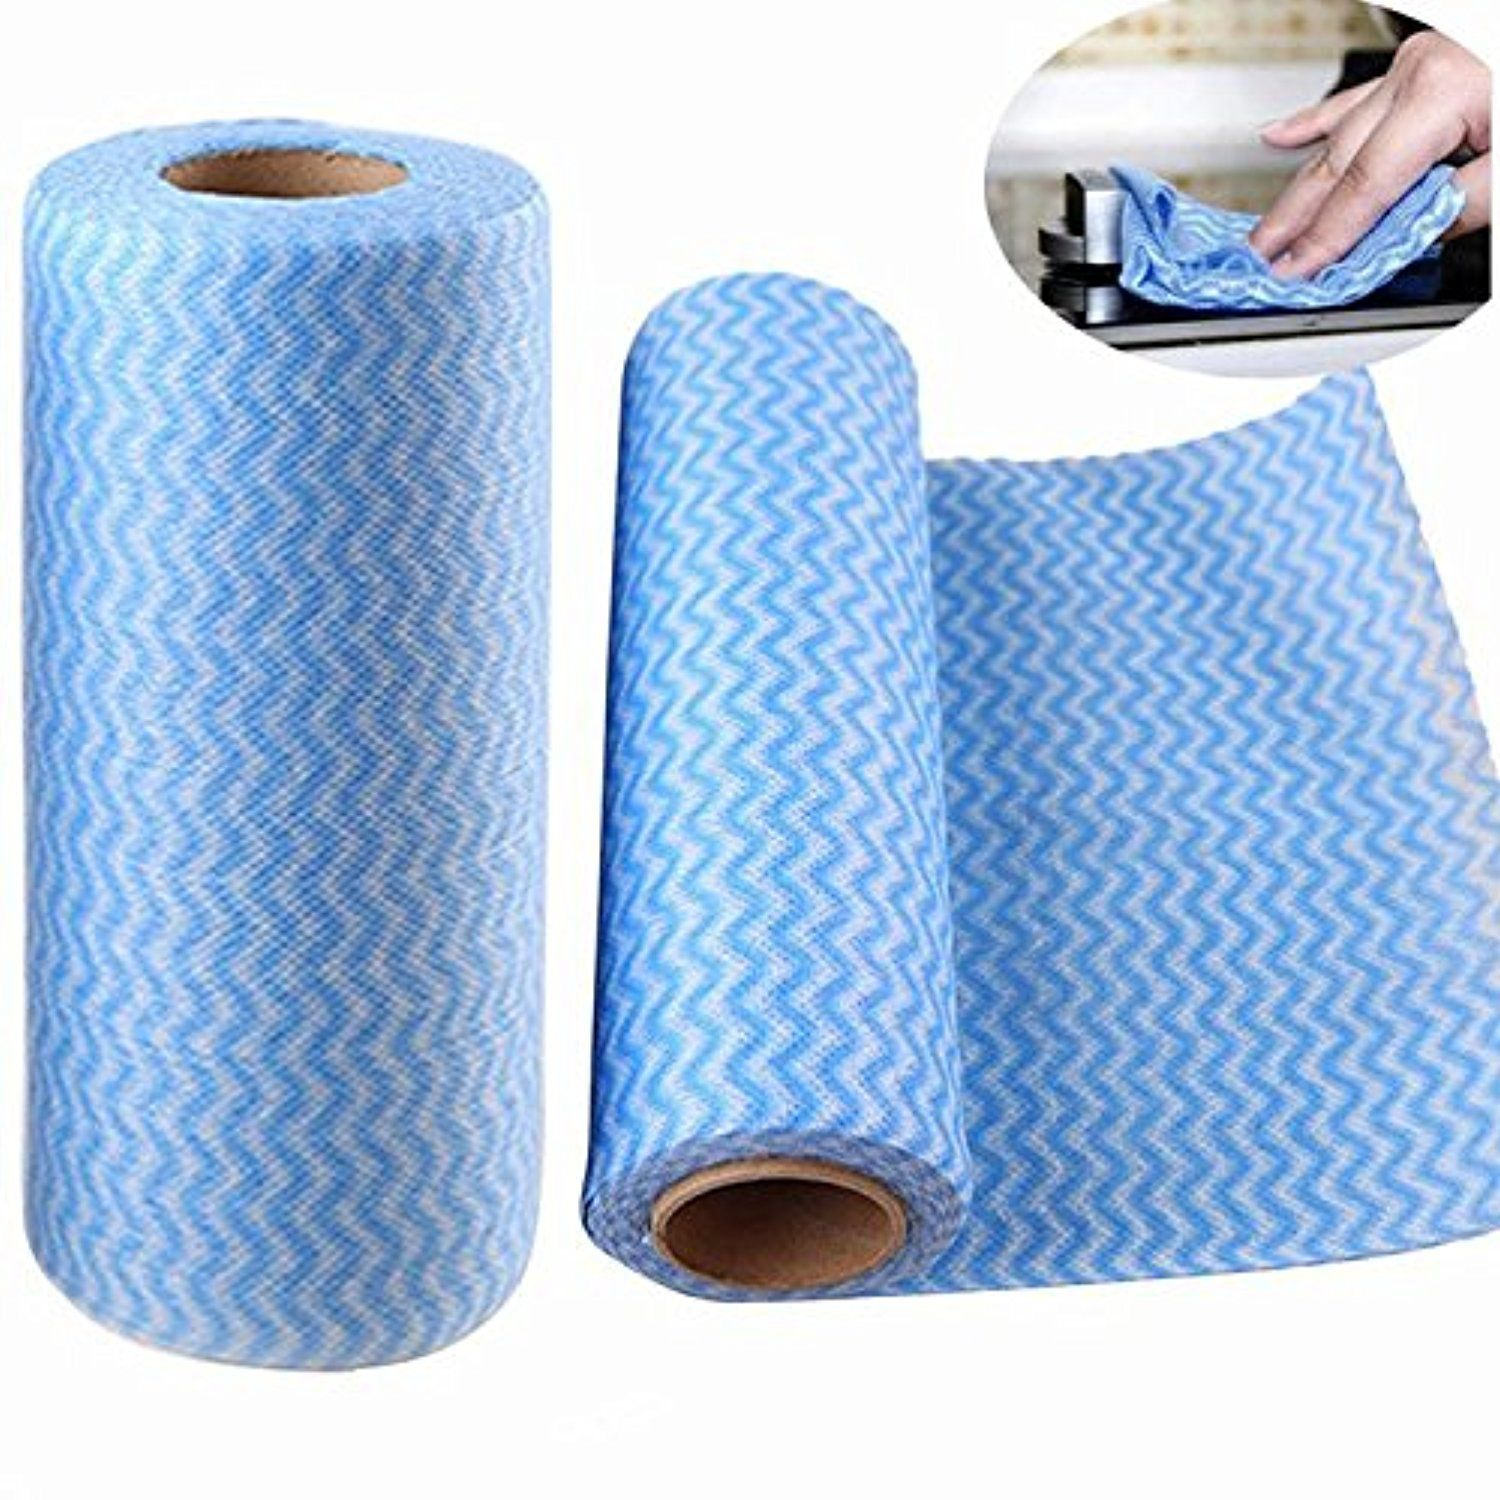 Dealglad Tear-off Point Roll Non-woven Cloth Dish Towel Home ...